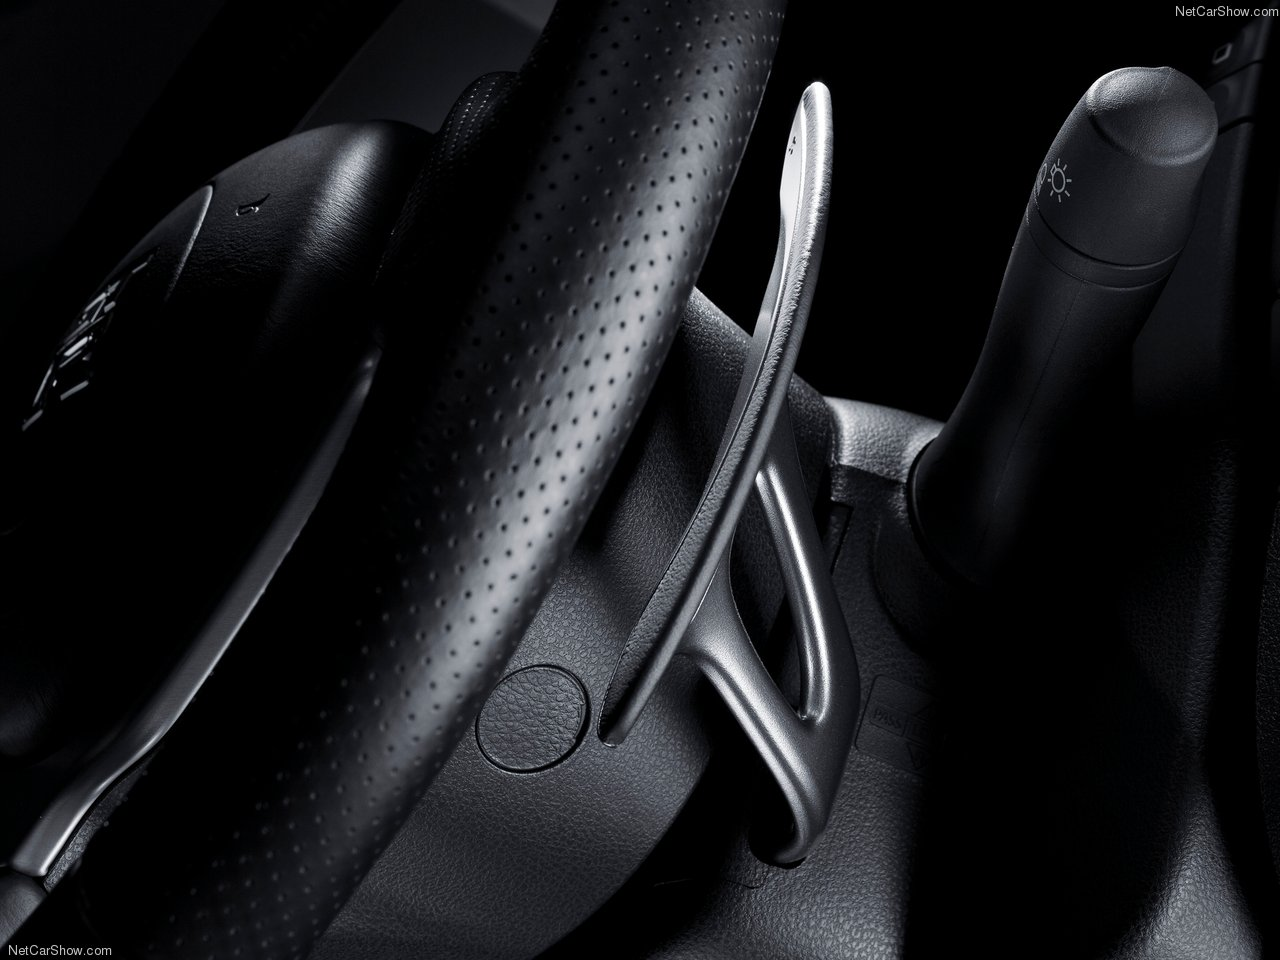 The shifter paddles hidden behind the steering wheel.